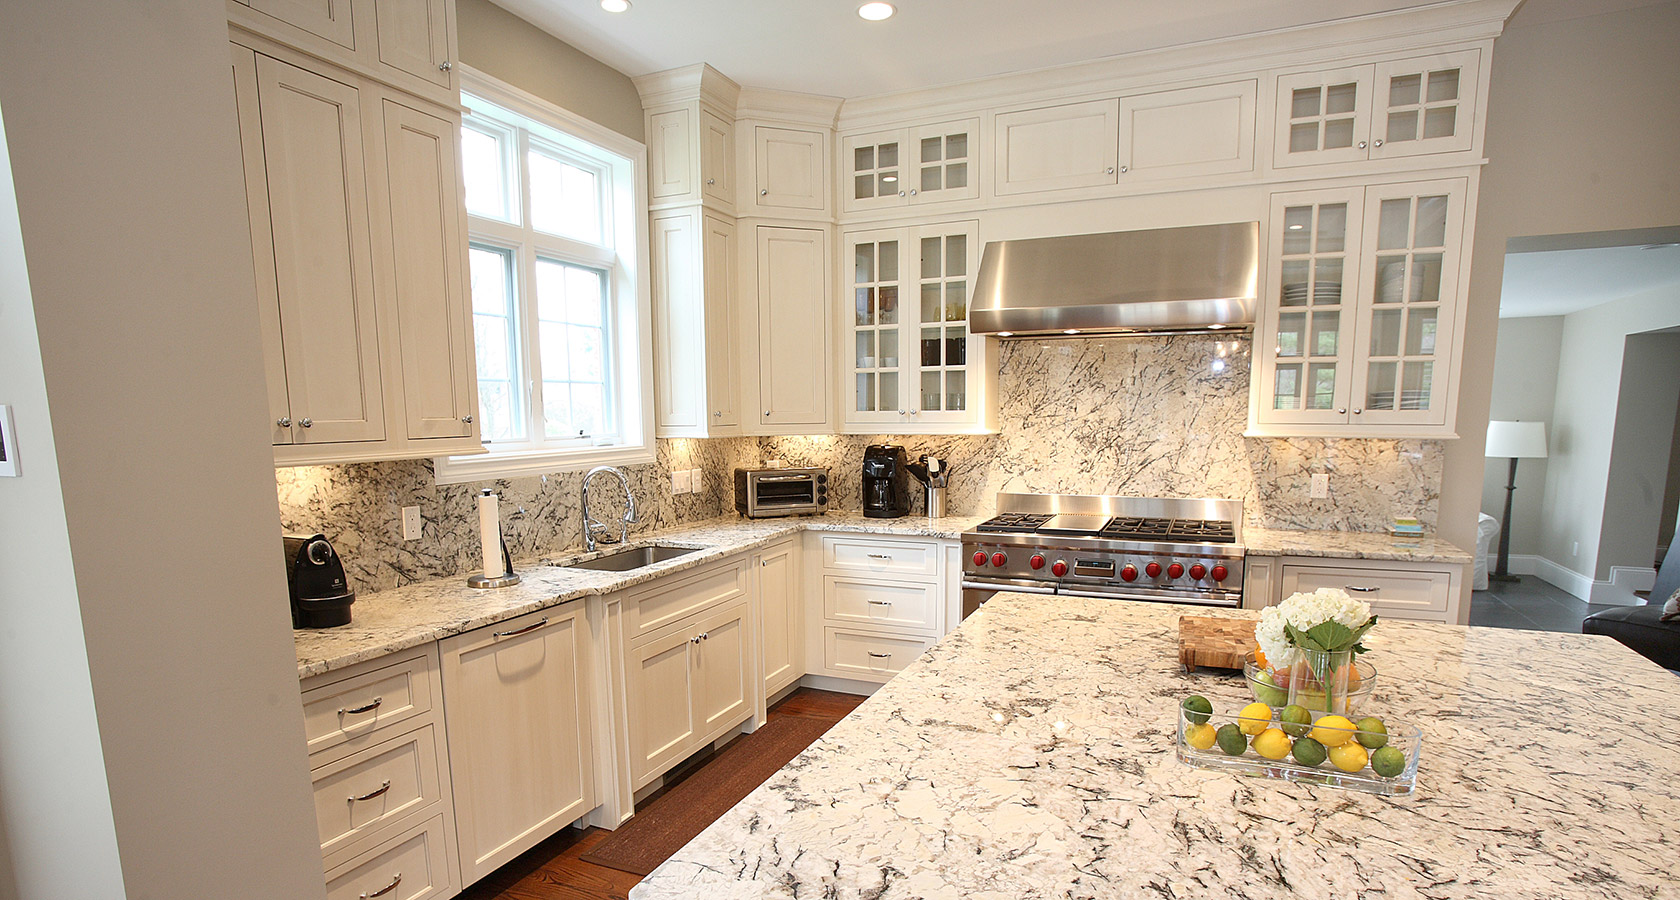 Granite Counter Tops : Persian pearl granite countertop kitchen design ideas